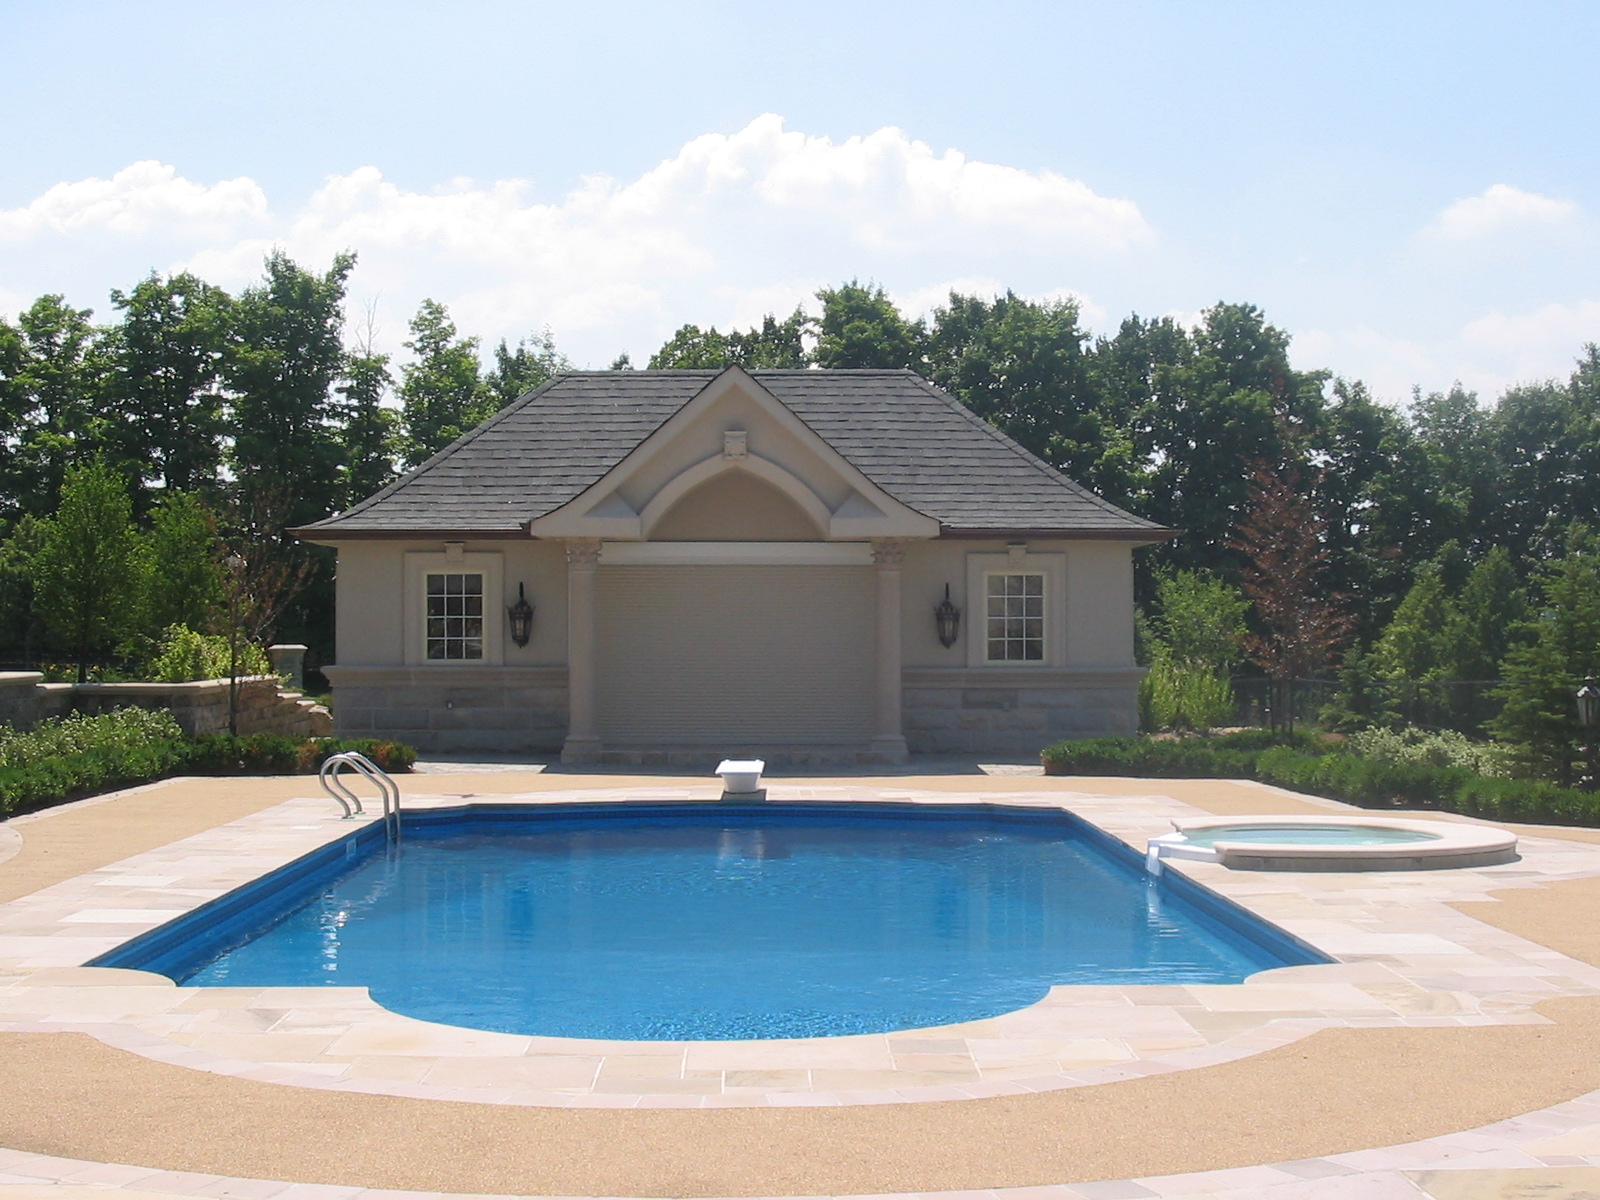 Swimming Pool Change Your Life : Ways owning a pool will change your life in